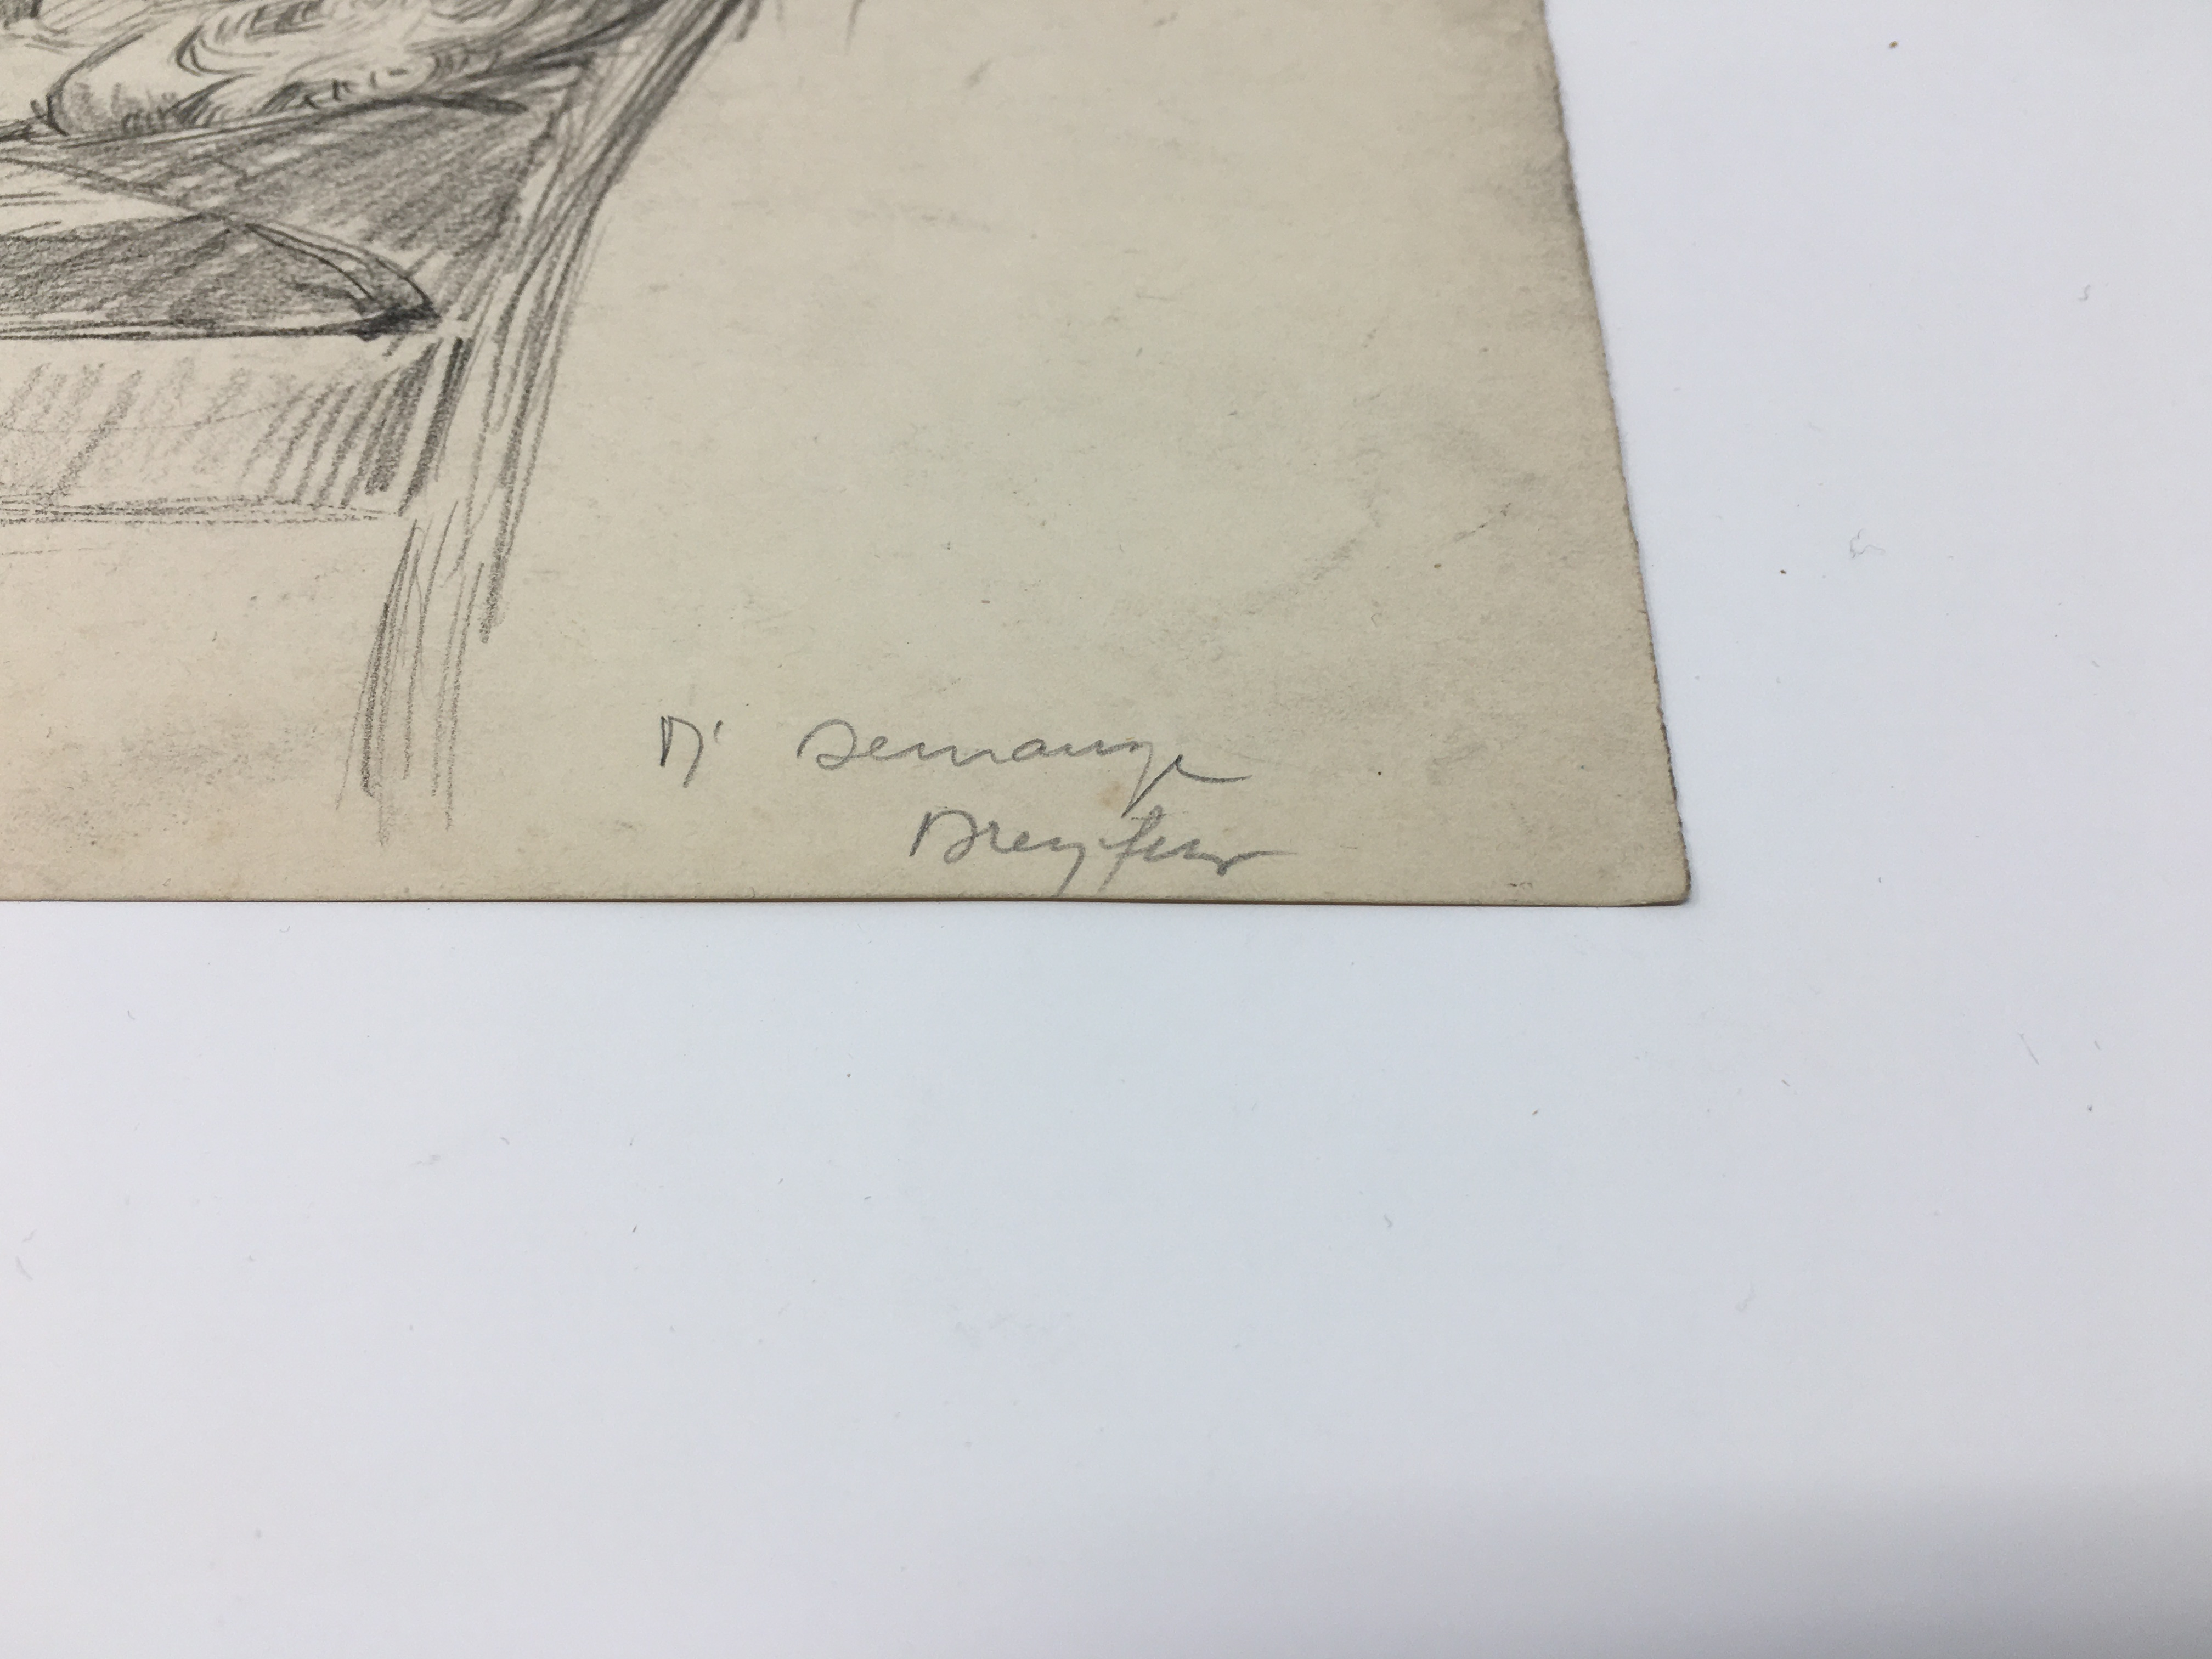 J'Accuse Newspaper, Emile Zola Quote, Signed Dreyfus Portrait, Rare Trial Drawings & Schwartzkoppen - Image 22 of 74